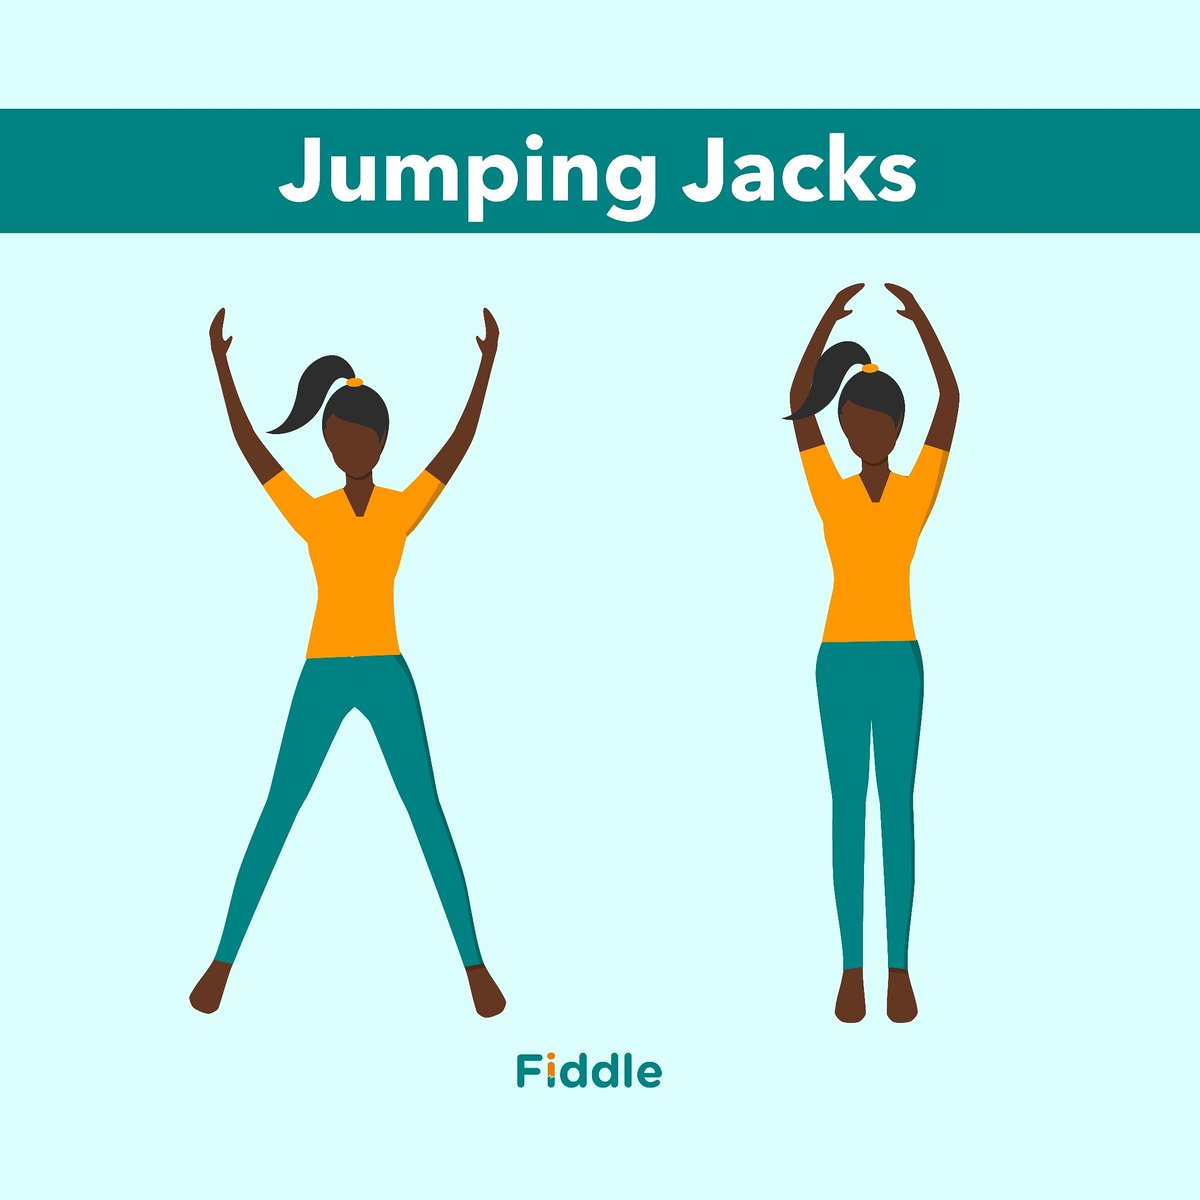 Jumping Jacks use your large muscle groups, legs and arms too. Jumping Jacks burn fat and calories, which can help decrease body weight.  #jumpingjacks #fitness #workout #pushups #squats #burpees #lunges #fitnessmotivation #homeworkout #exercise #mountainclimbers #fit #fitfampic.twitter.com/wYUhm5Tnzy